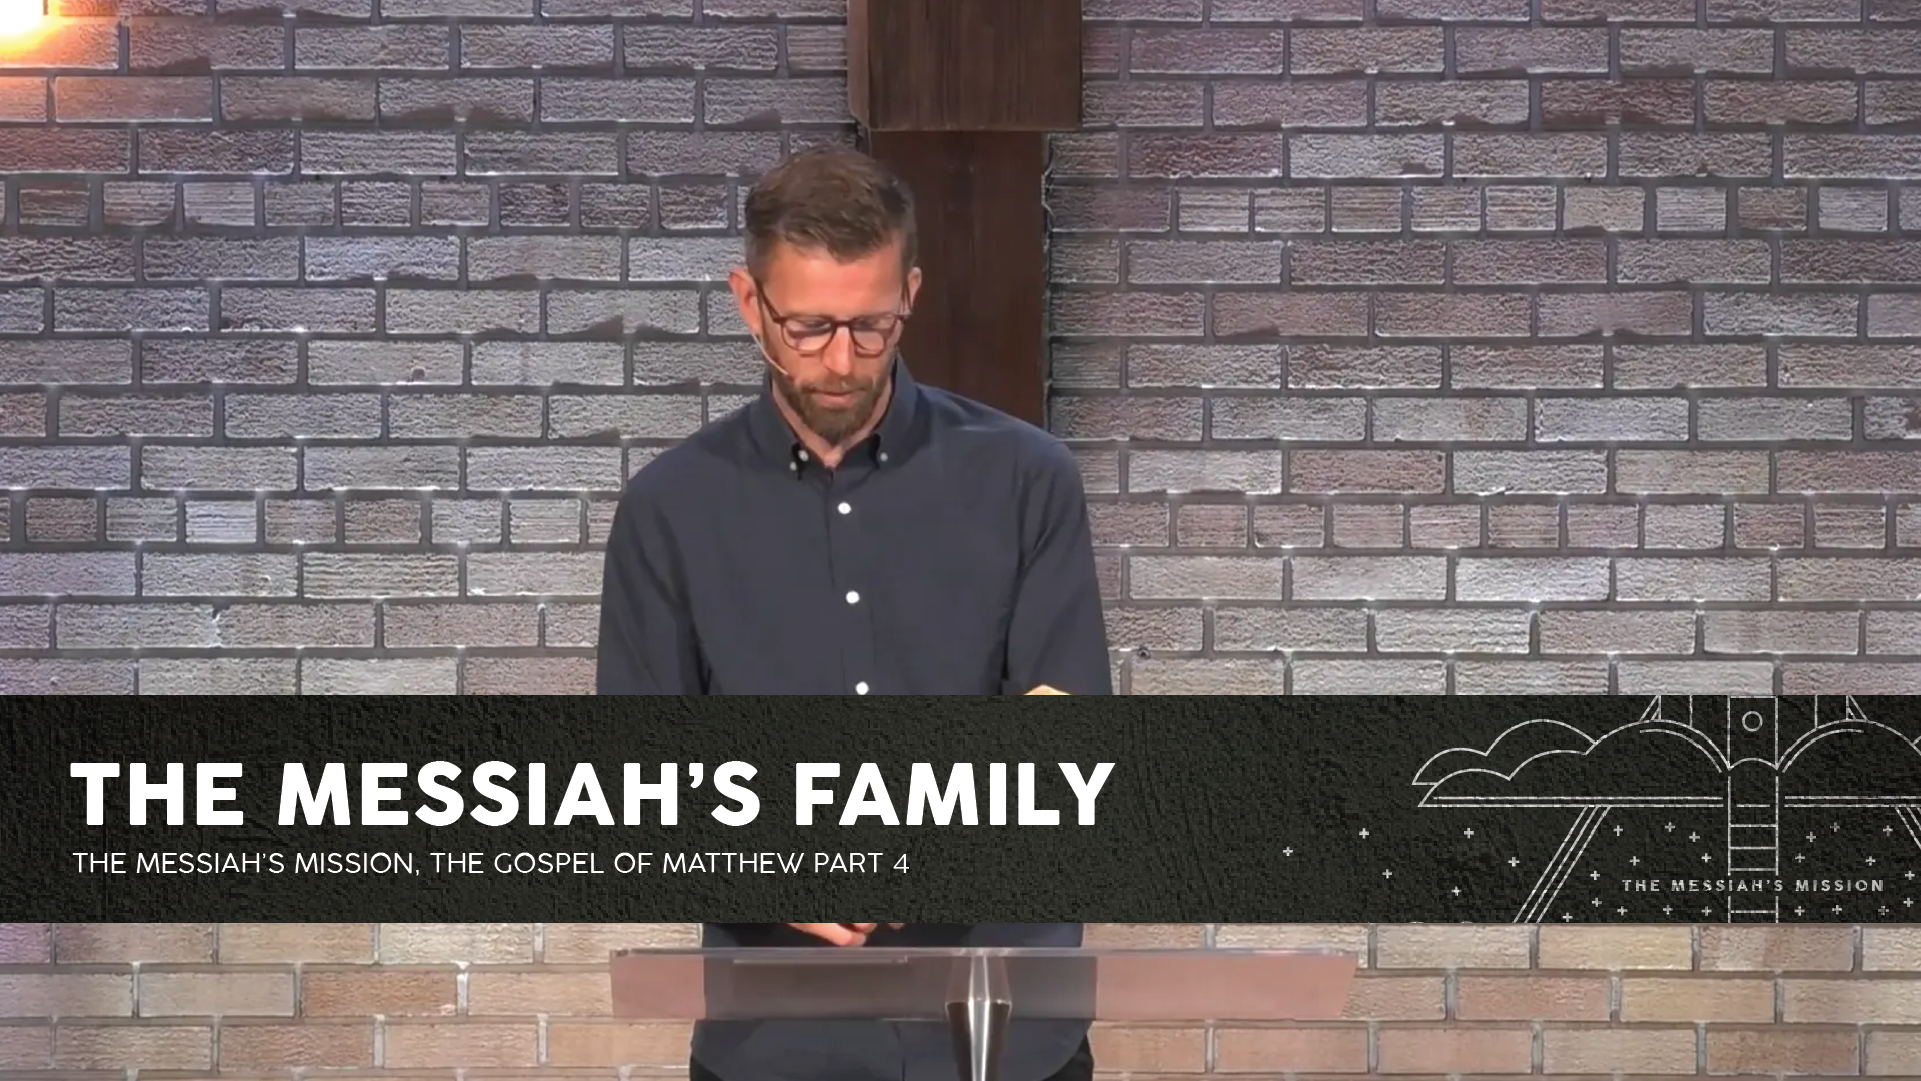 The Messiah's Family